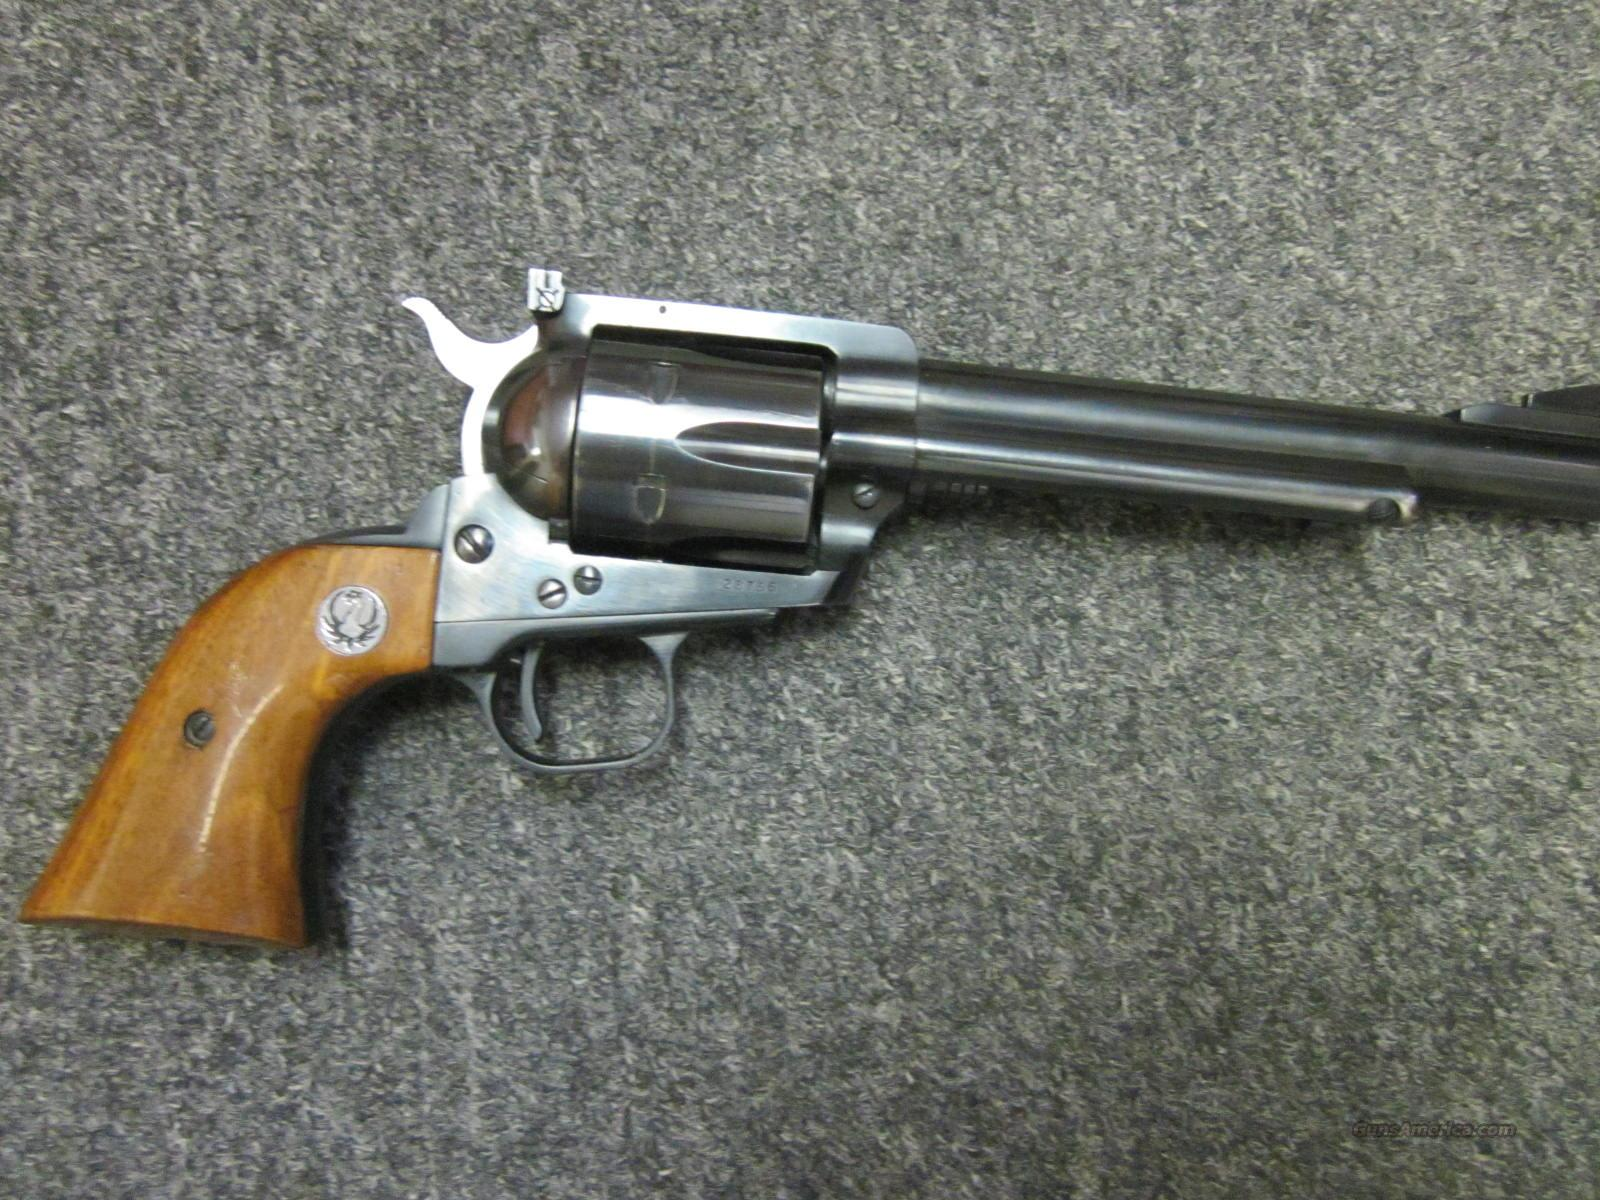 Ruger Blackhawk Flat Top 44Mag  Guns > Pistols > Ruger Single Action Revolvers > Blackhawk Type